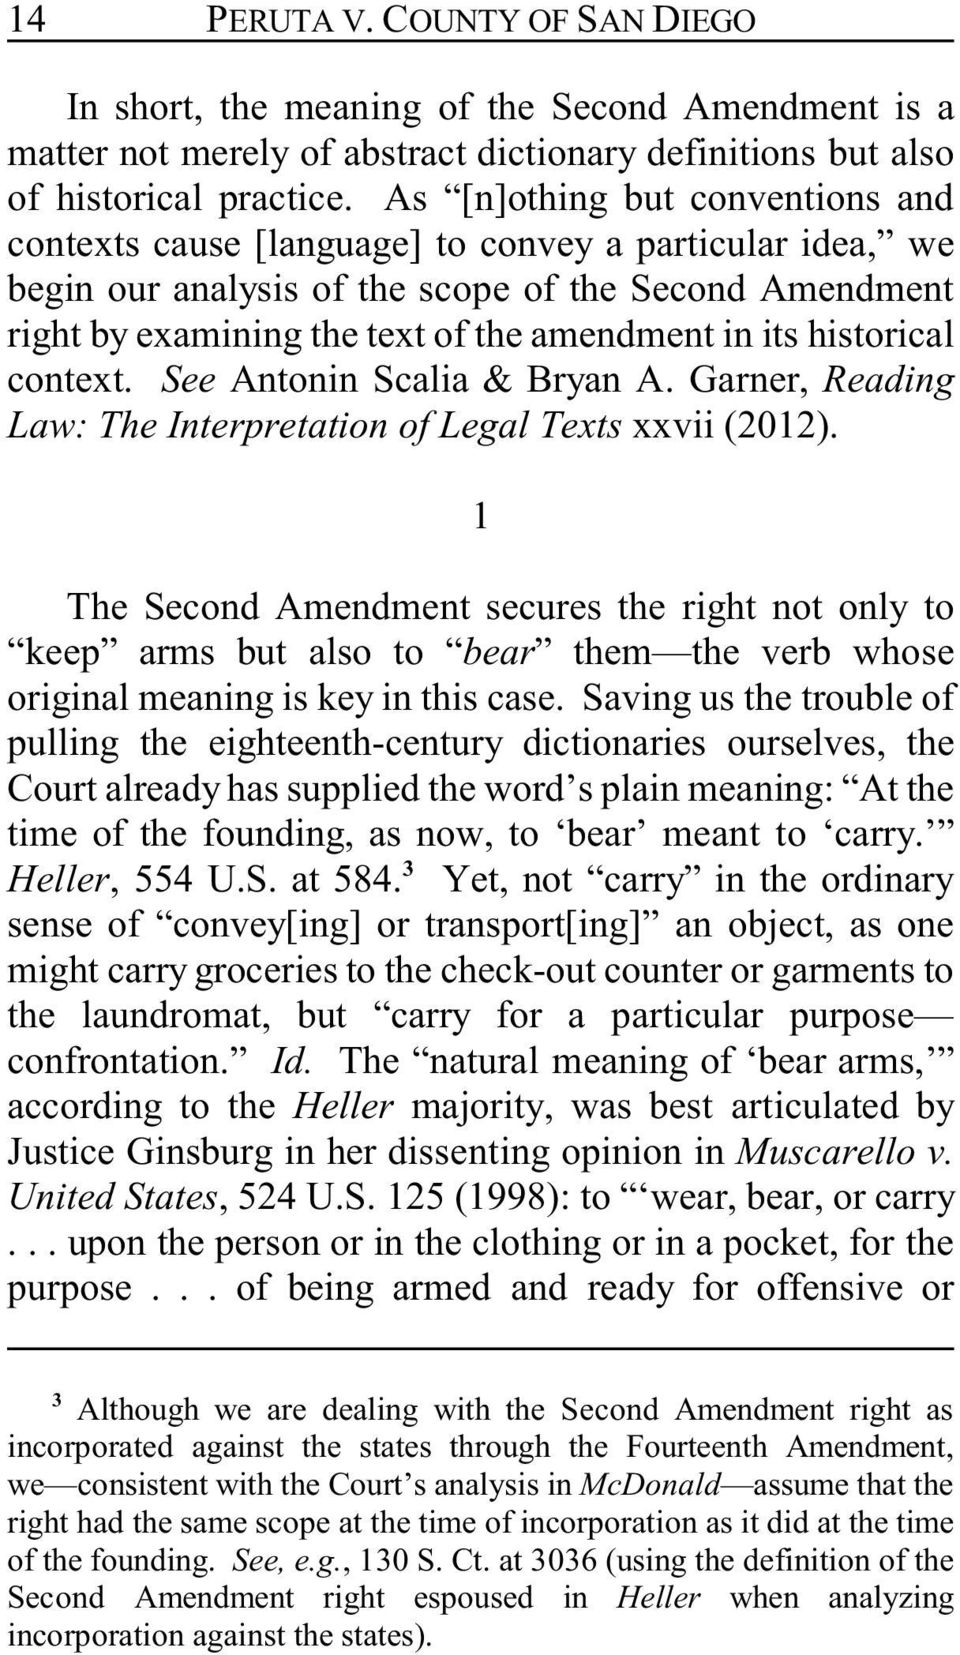 historical context. See Antonin Scalia & Bryan A. Garner, Reading Law: The Interpretation of Legal Texts xxvii (2012).